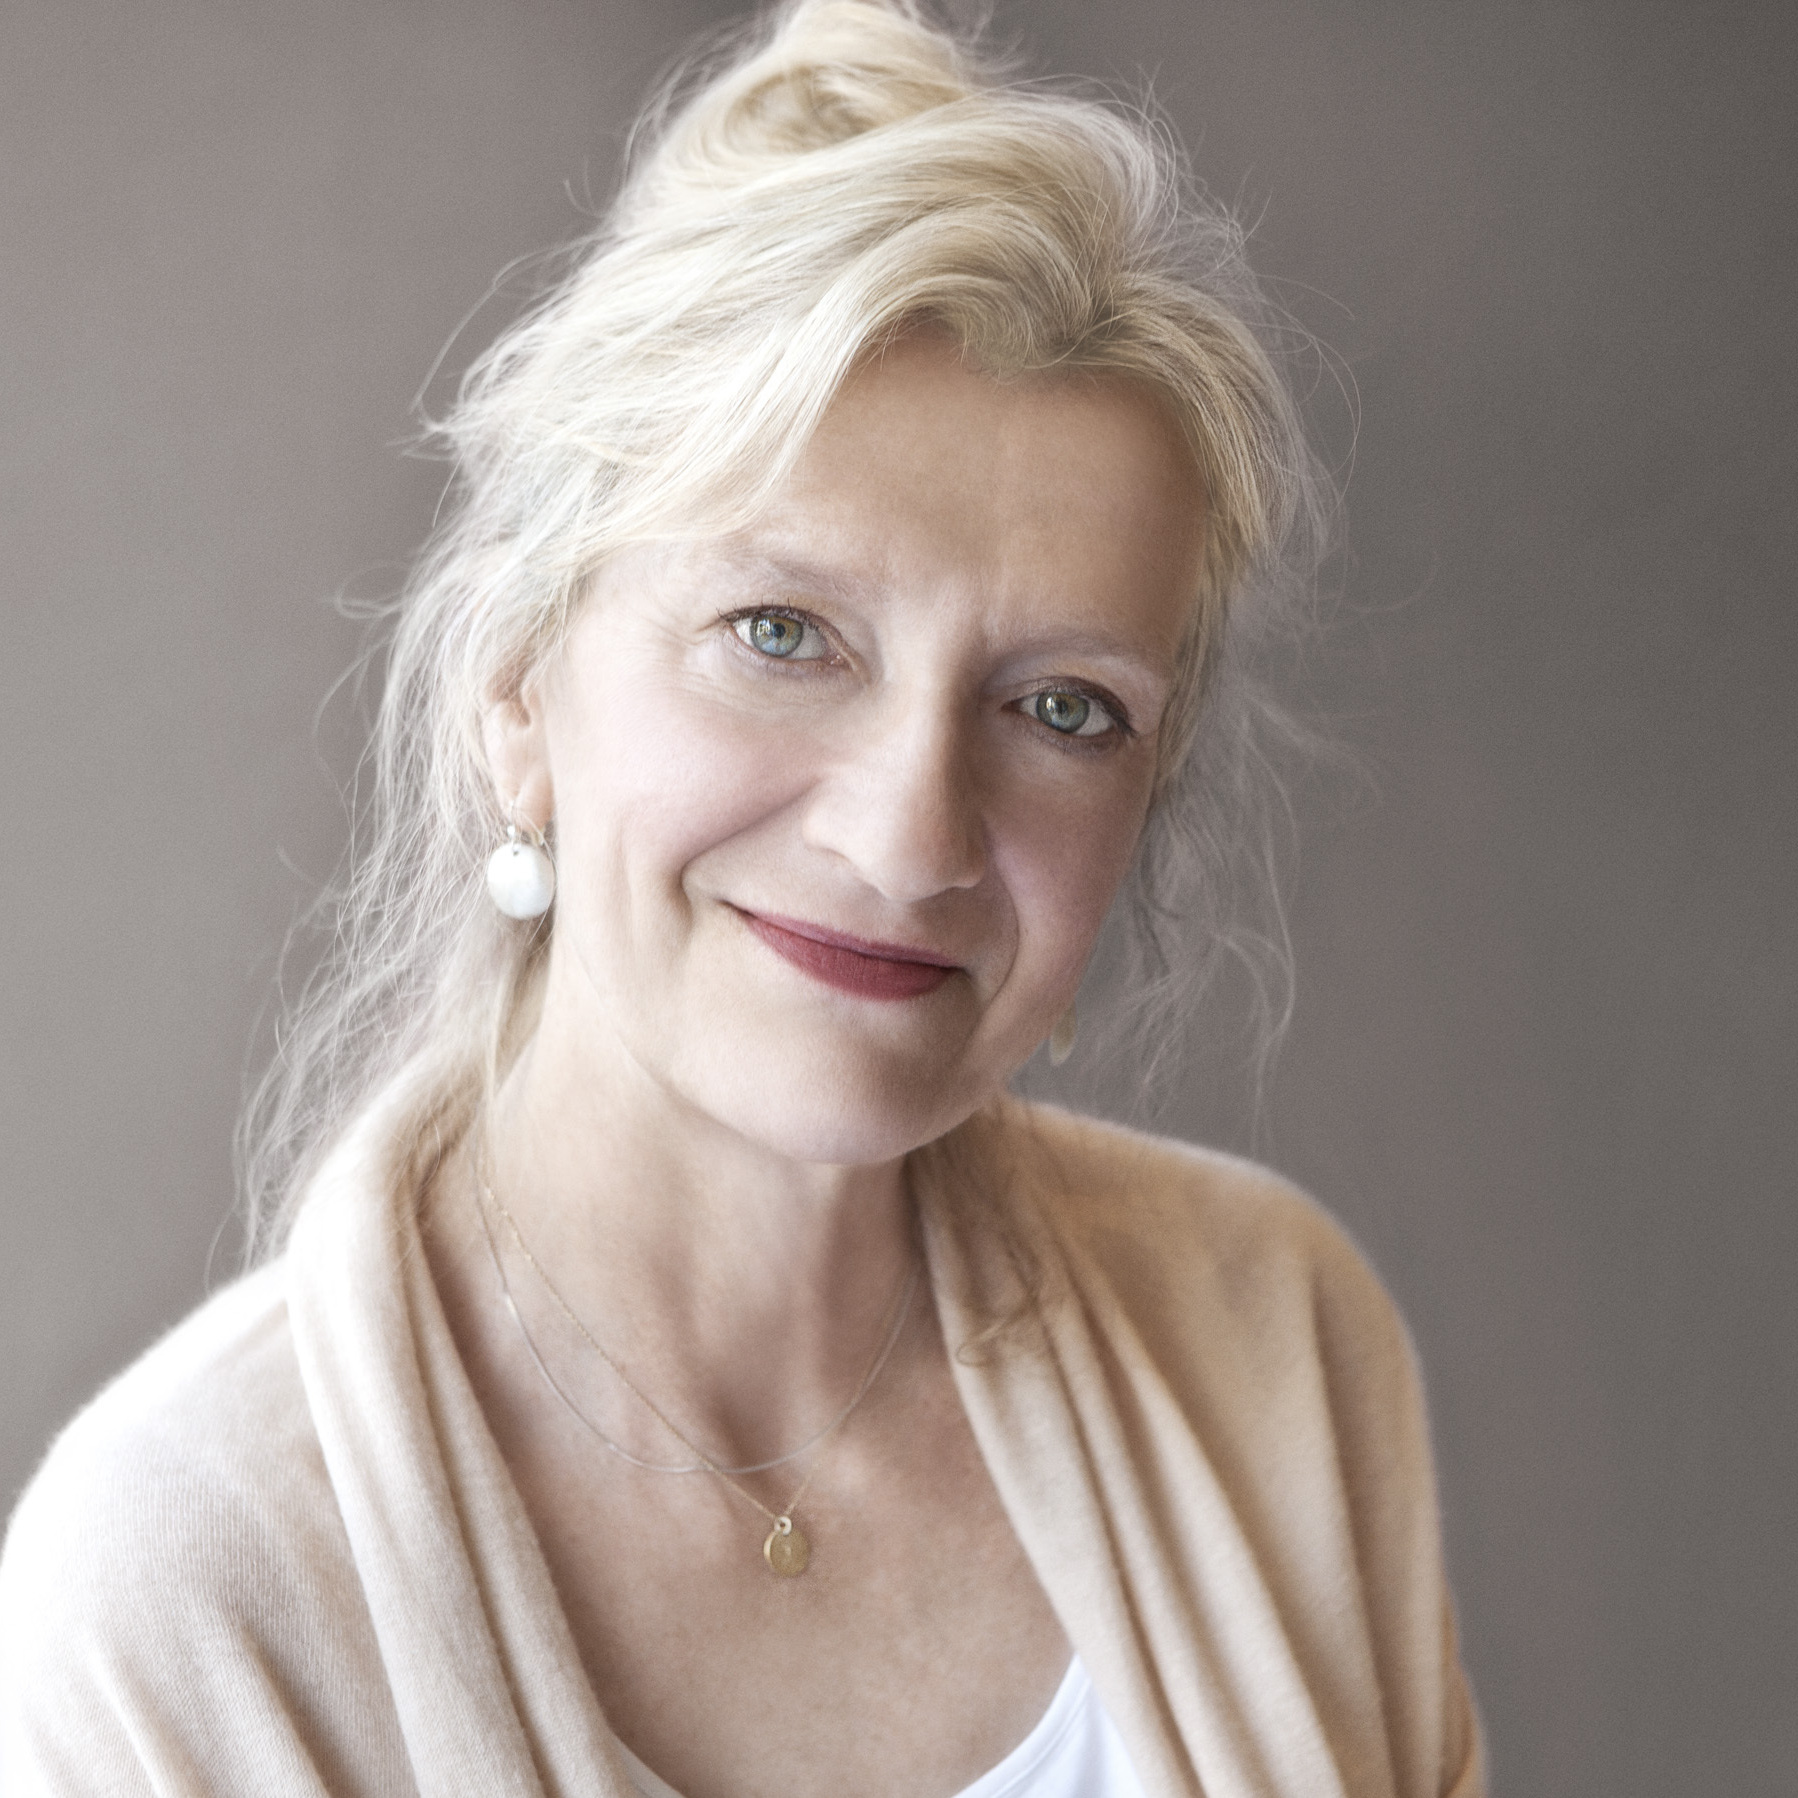 Elizabeth Strout won the Pulitzer Prize for her previous novel Olive Kitteridge.